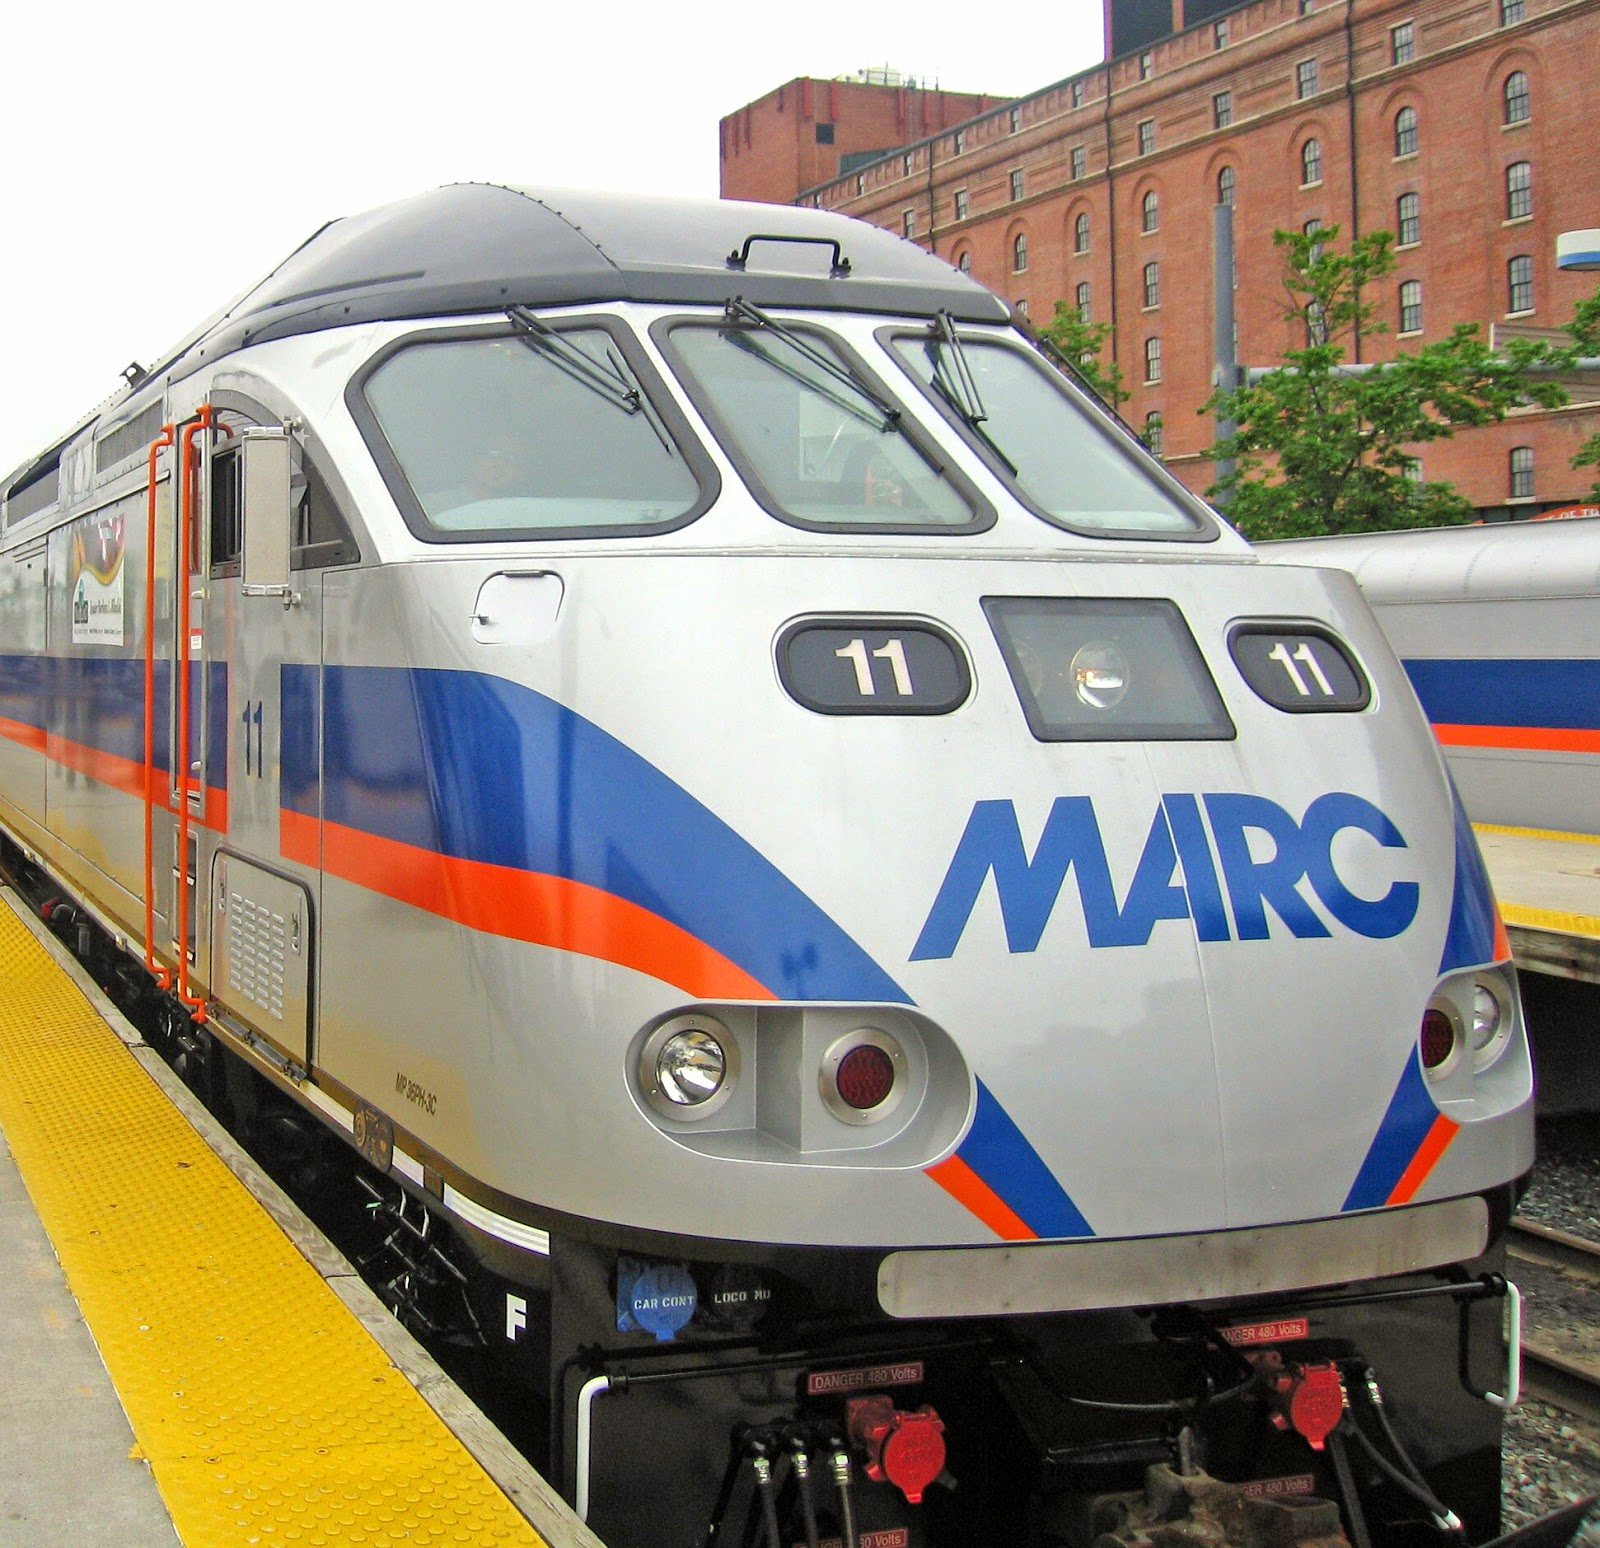 is my marc monthly/weekly pass good for marc train weekend service